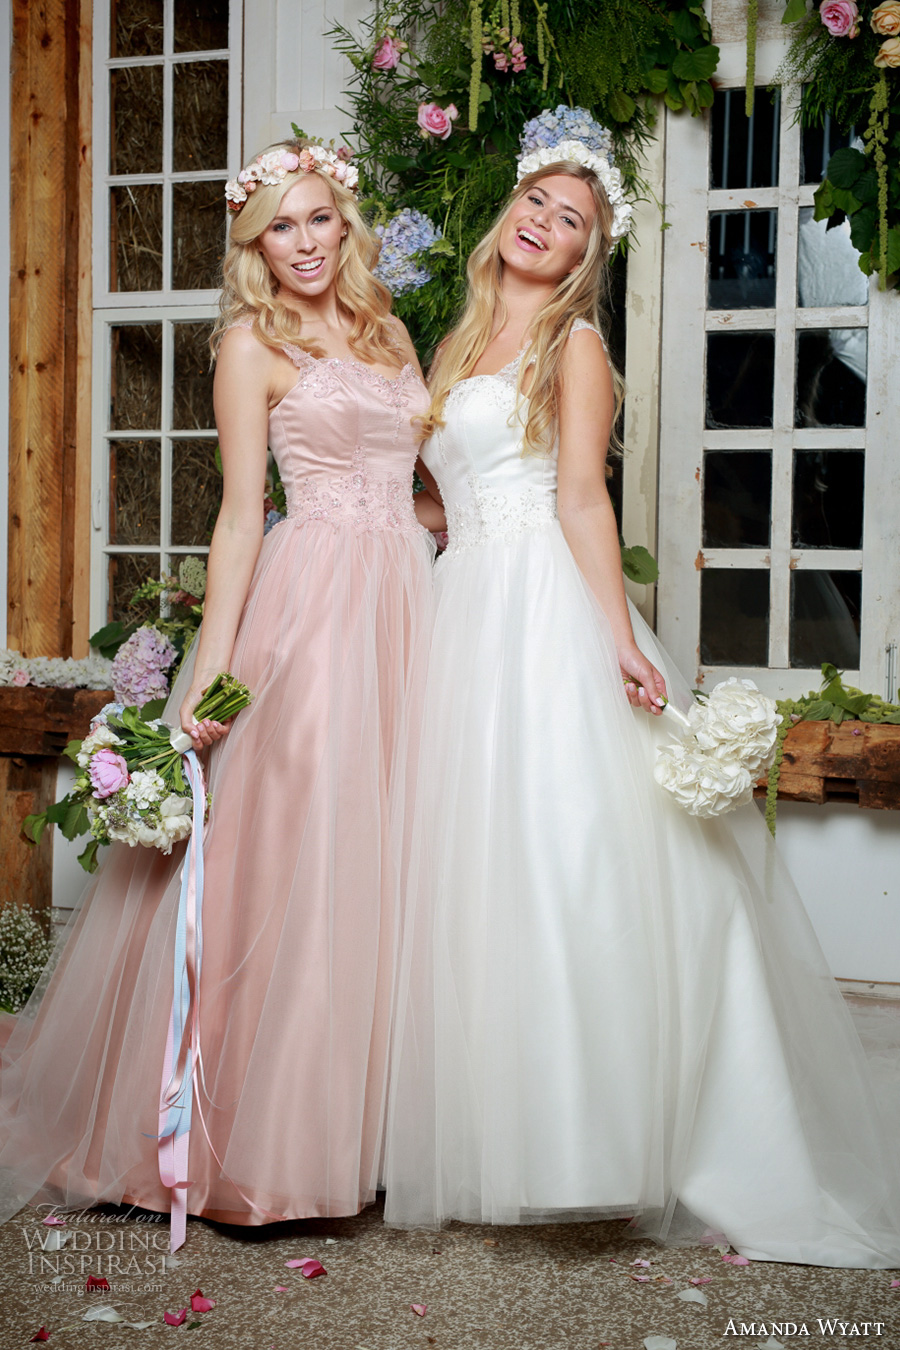 amanda wyatt 2017 bridal thick strap semi sweetheart neckline lightly embellished bodice tulle skirt ivory pink color romantic a line wedding dress sweep train (mistie ivory and pink ) mv